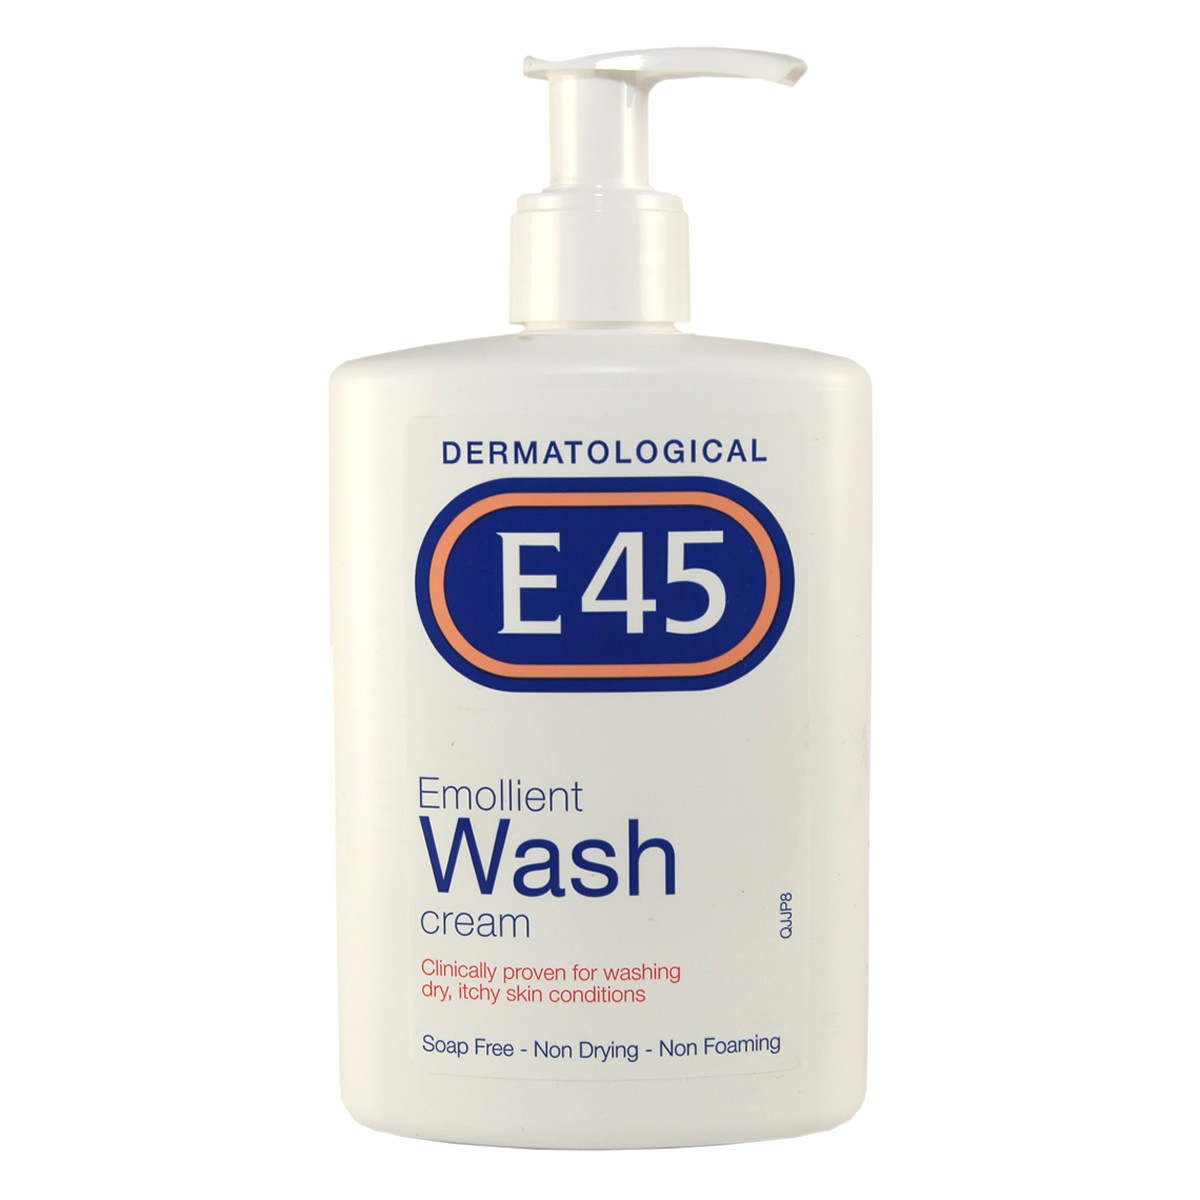 E45 Emollient Wash Cream